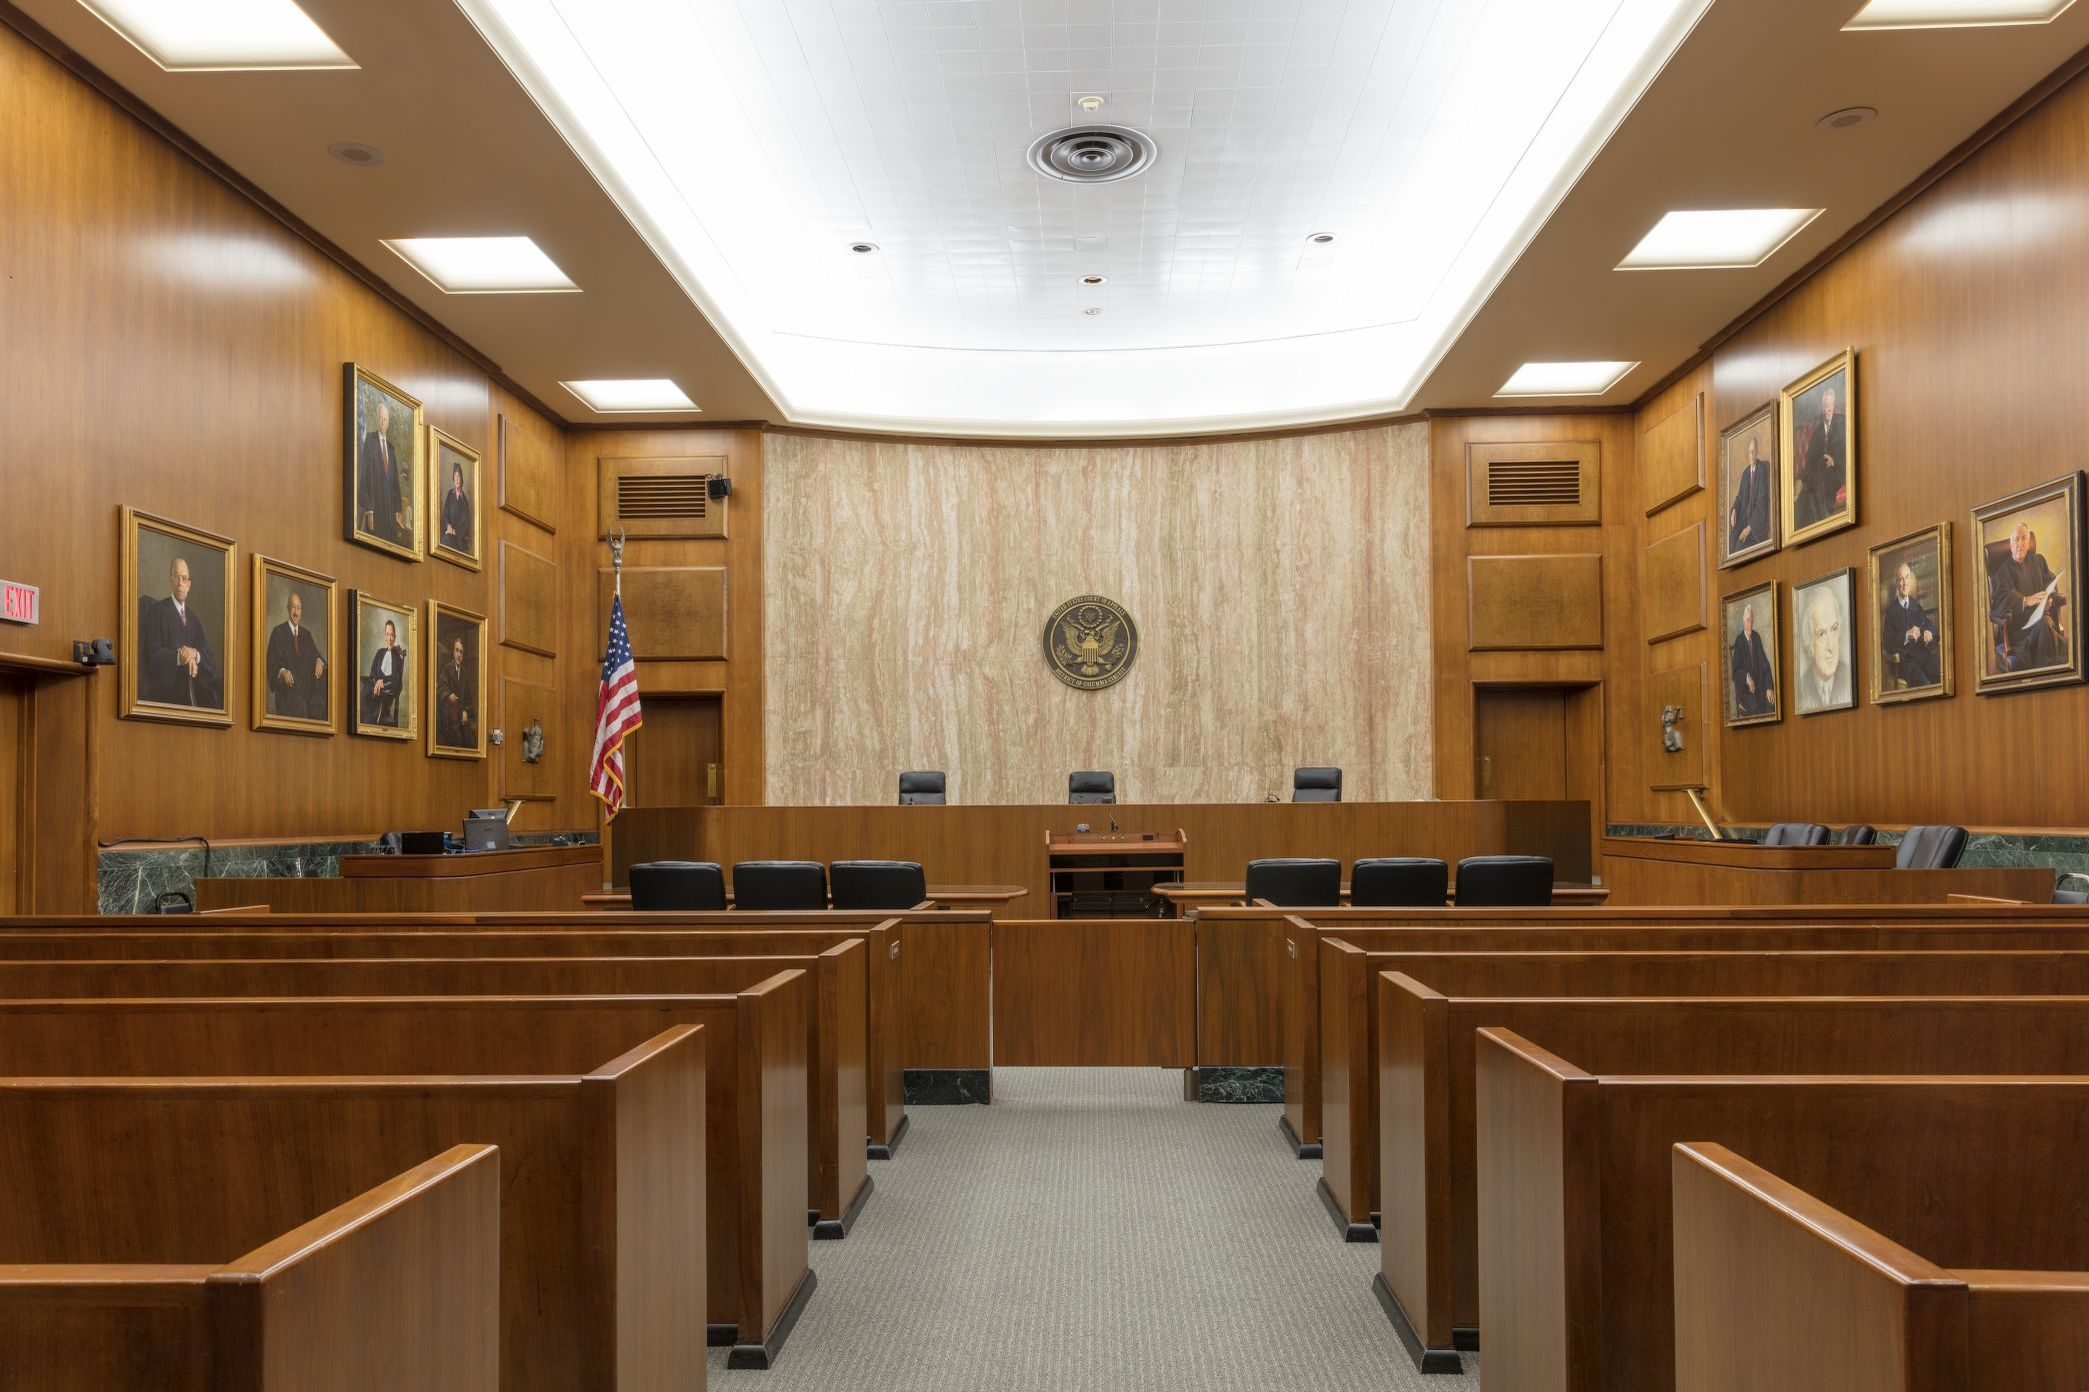 Courtroom In The Historic E Barrett Prettyman Federal